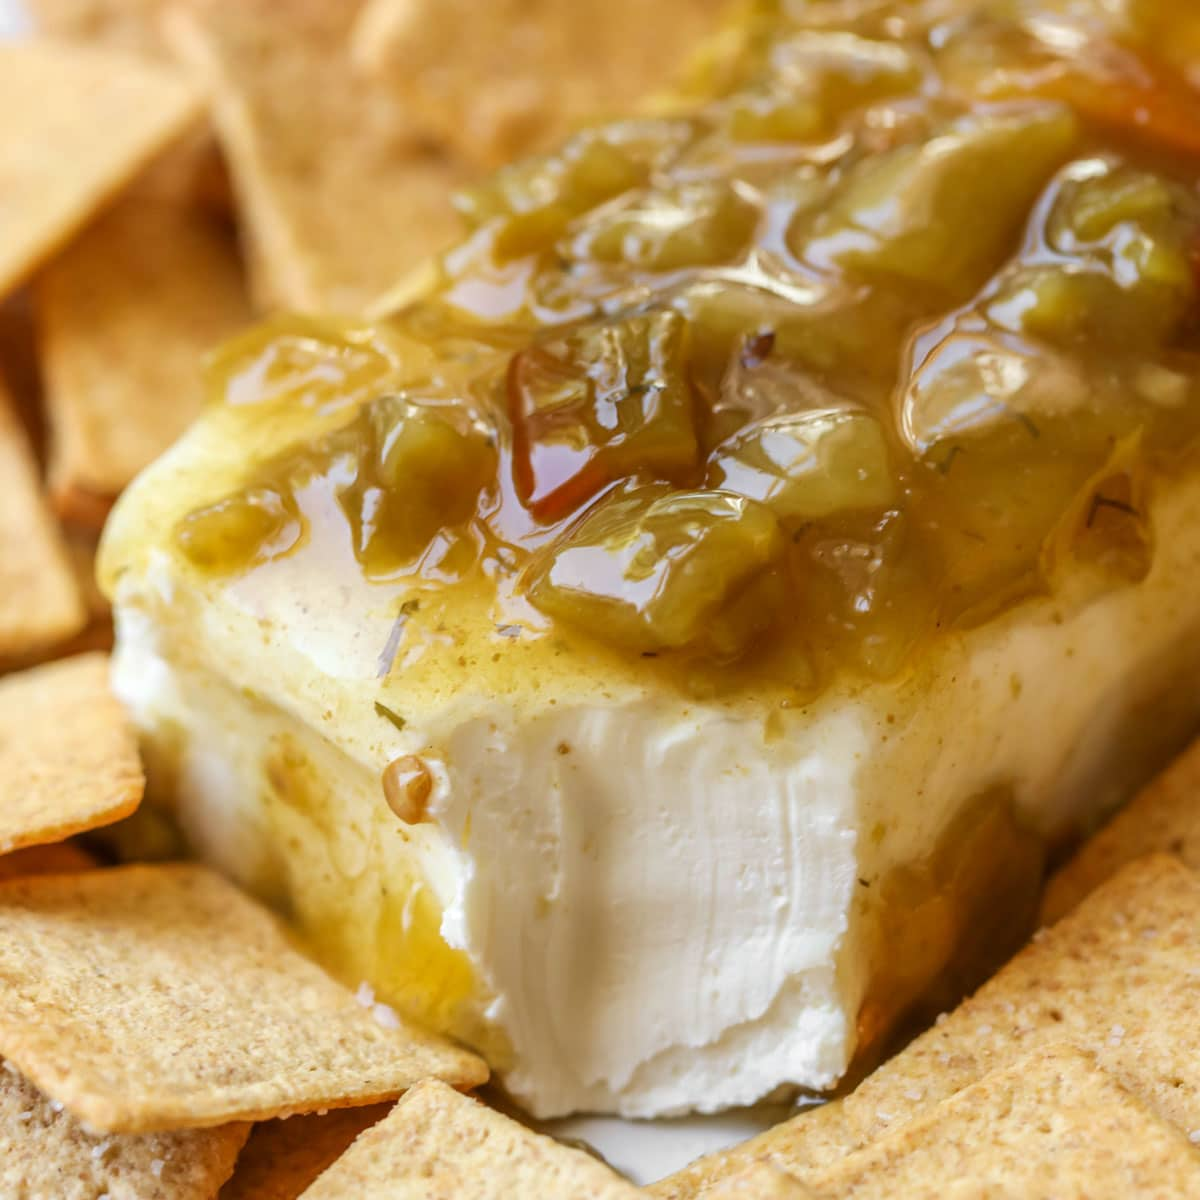 Cream cheese covered in green chili